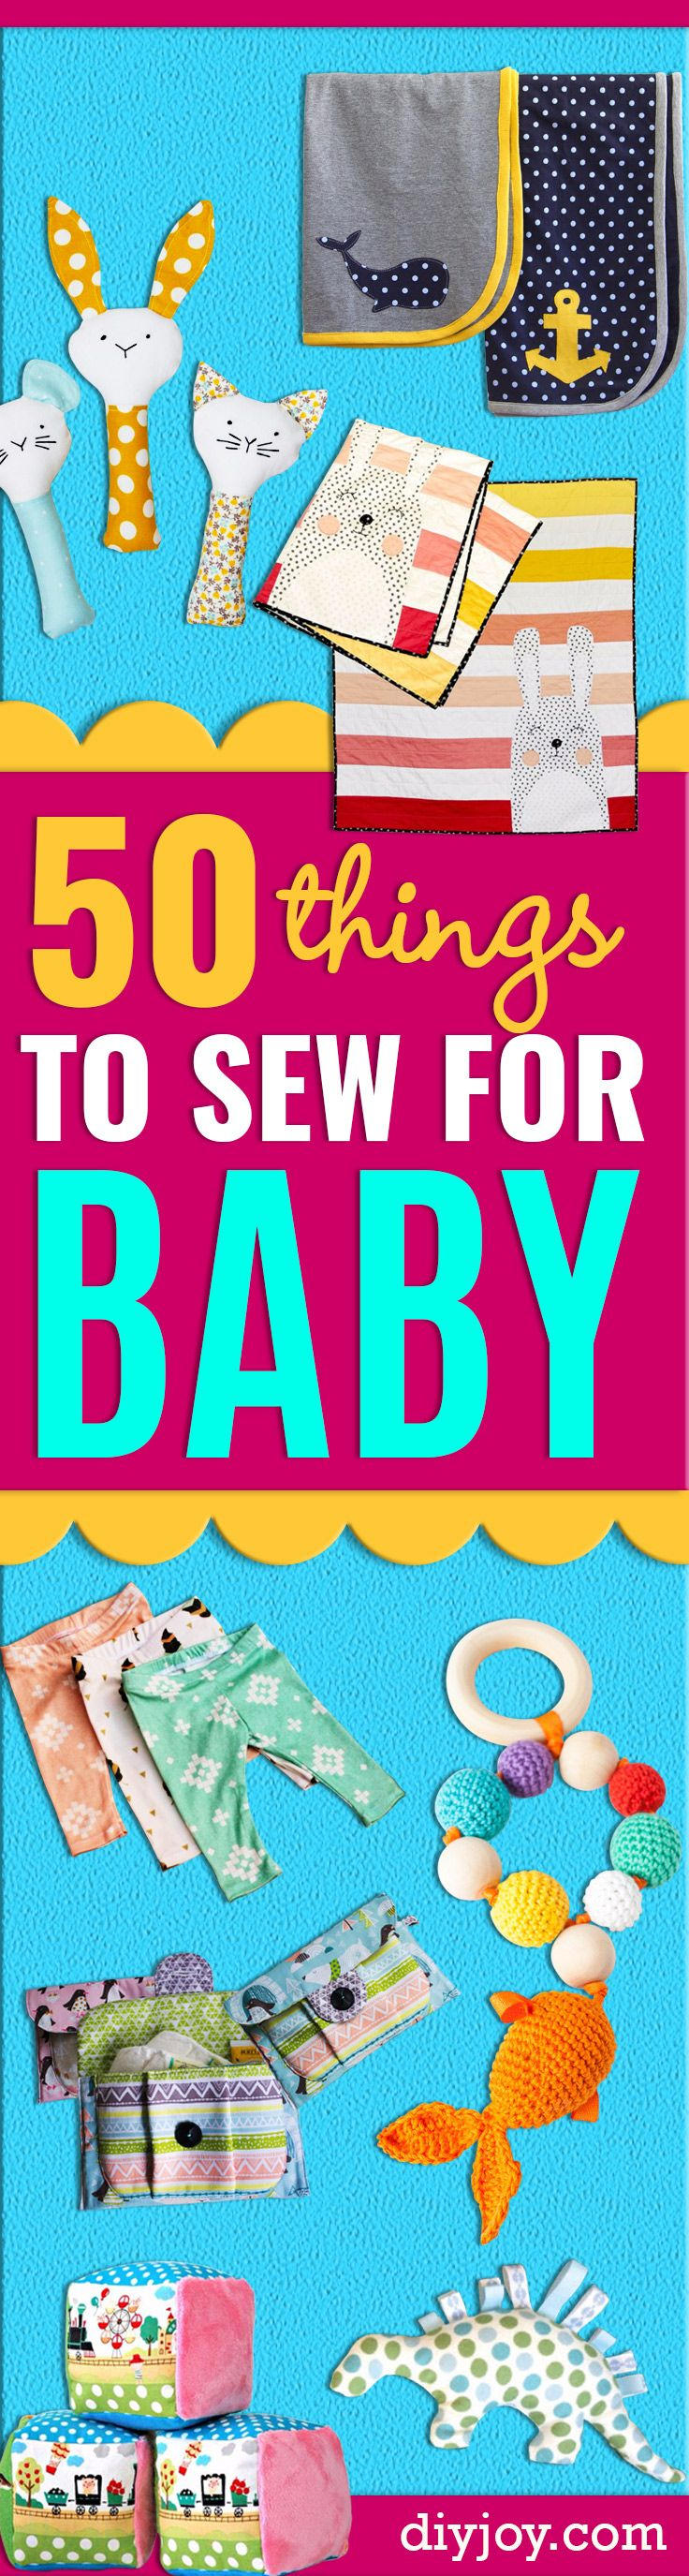 ~ 51 Things to Sew for Baby